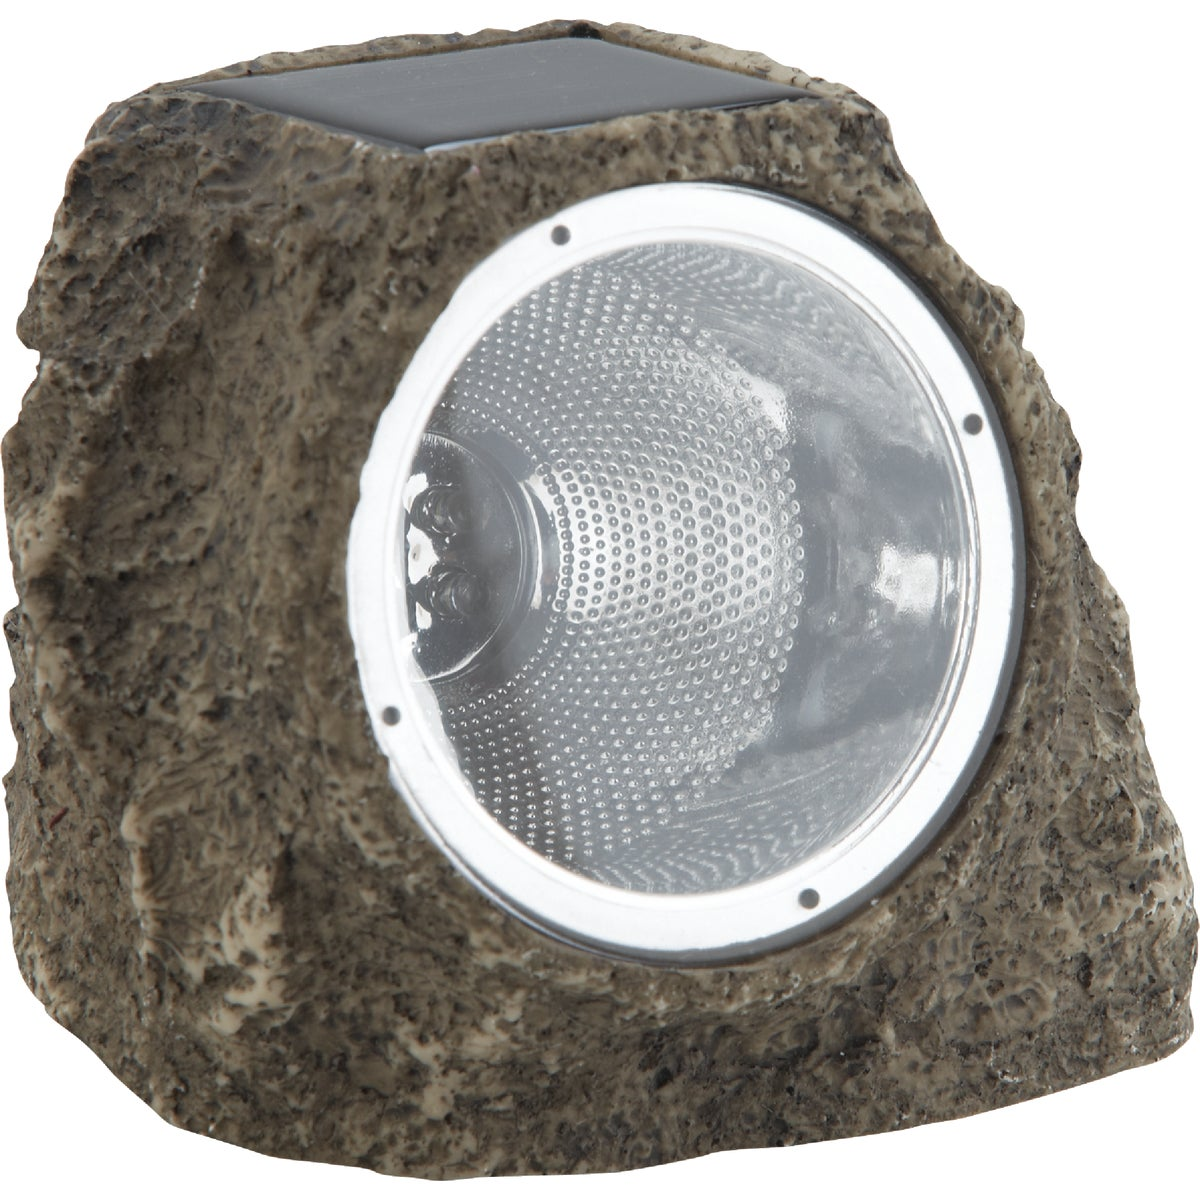 TAN SOLAR ROCK LIGHT - ESL-24-16-1 by Do it Best